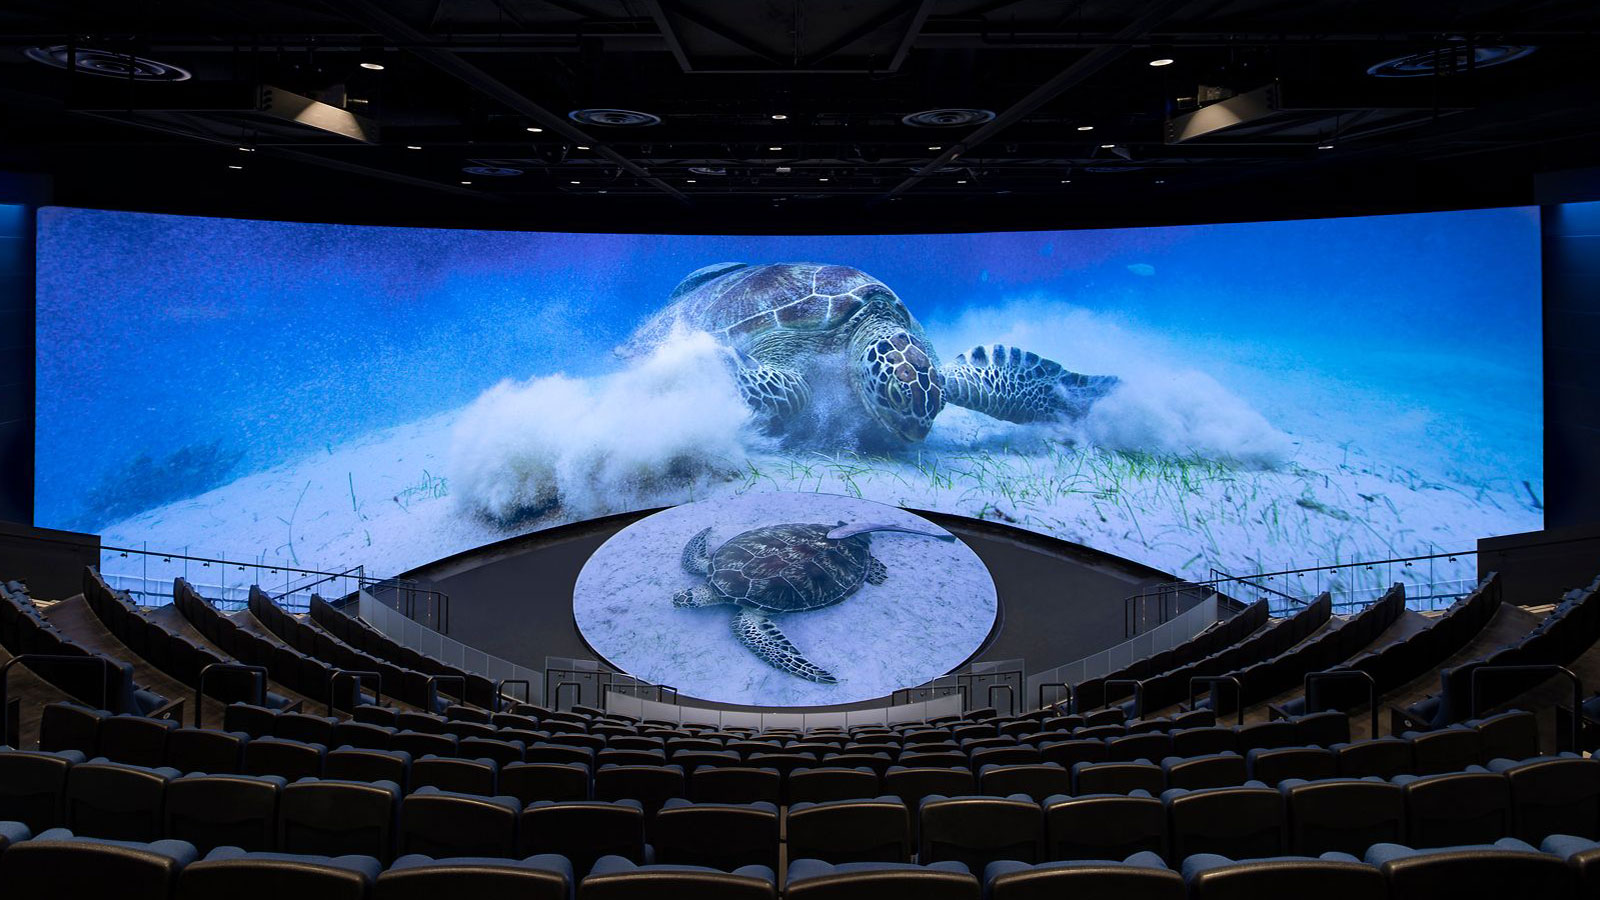 Honda Pacific Visions 4D theater at Aquarium of the Pacific with Ultraleap haptic technology